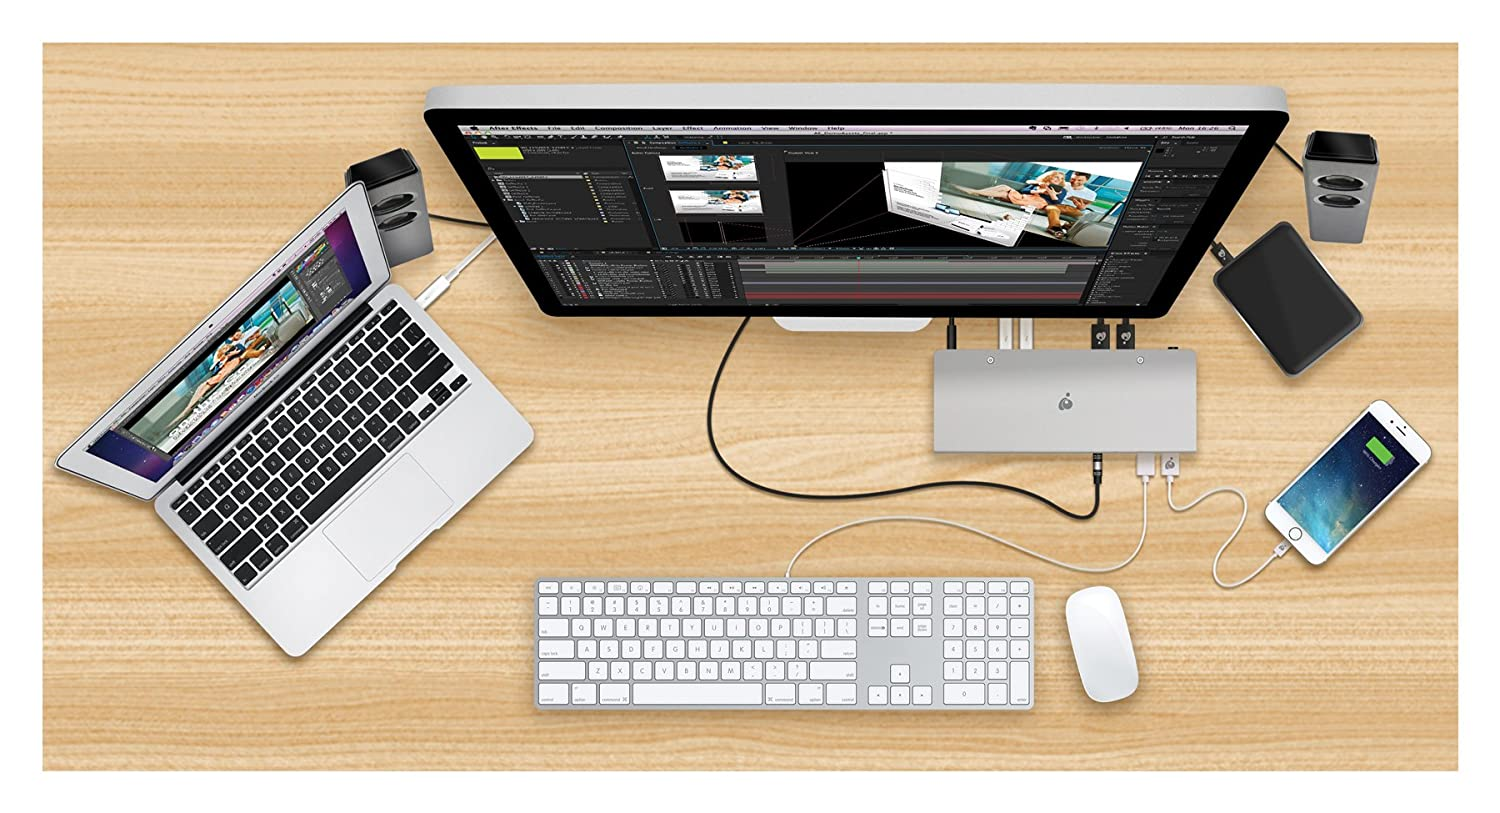 GUD3C02 IOGEAR USB-C Ultra-Slim Dual Display Docking Station with Power Delivery